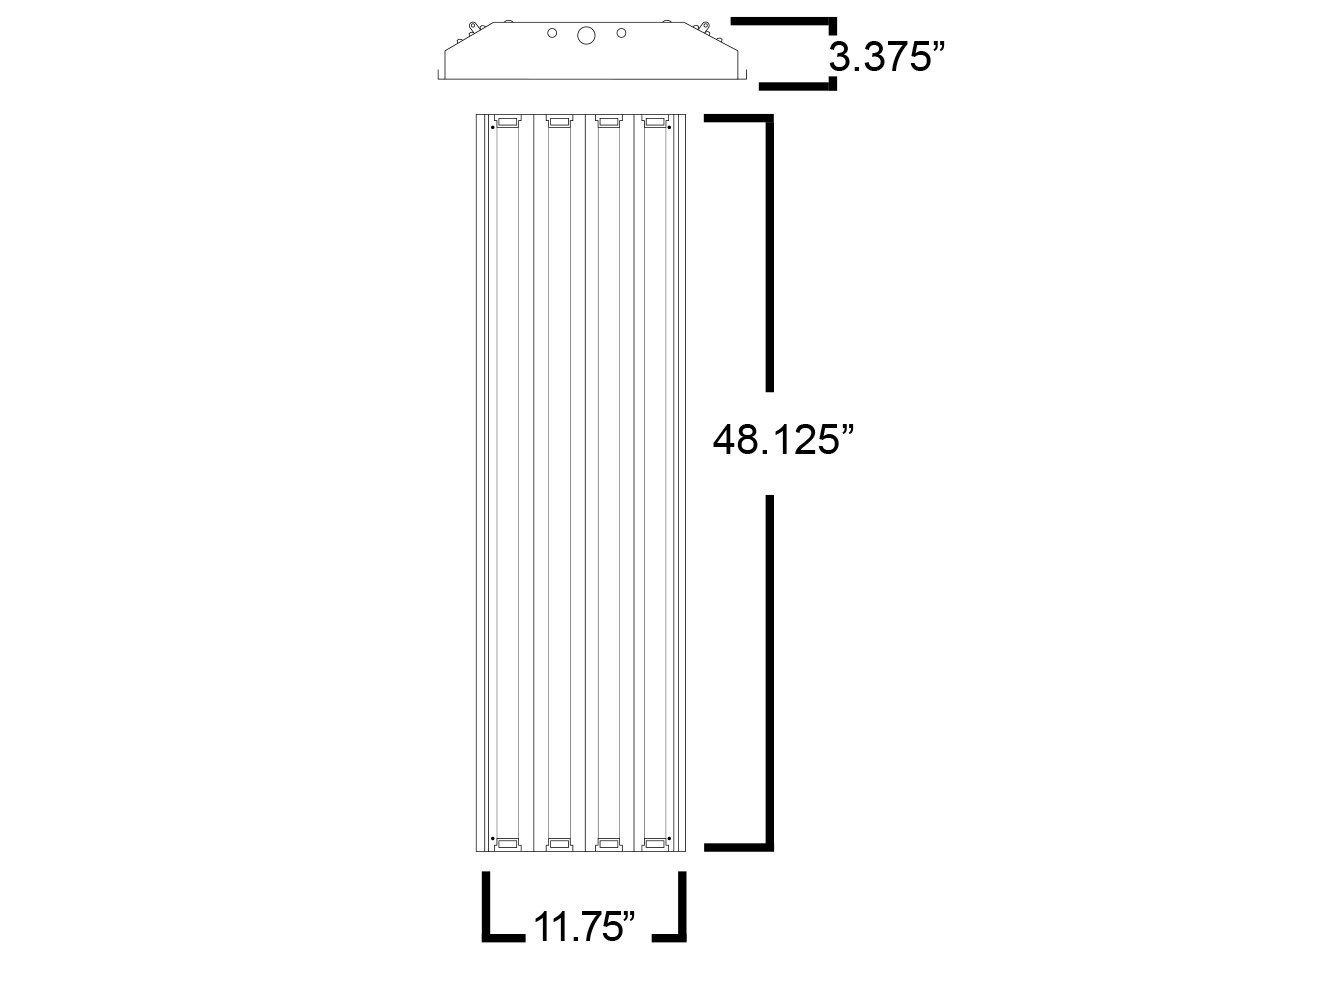 Four Bros Lighting Hb 4 T5 Bay Lamp Fluorescent Fixture Table Wiring Diagram High Output Ho 120 277v Commercial